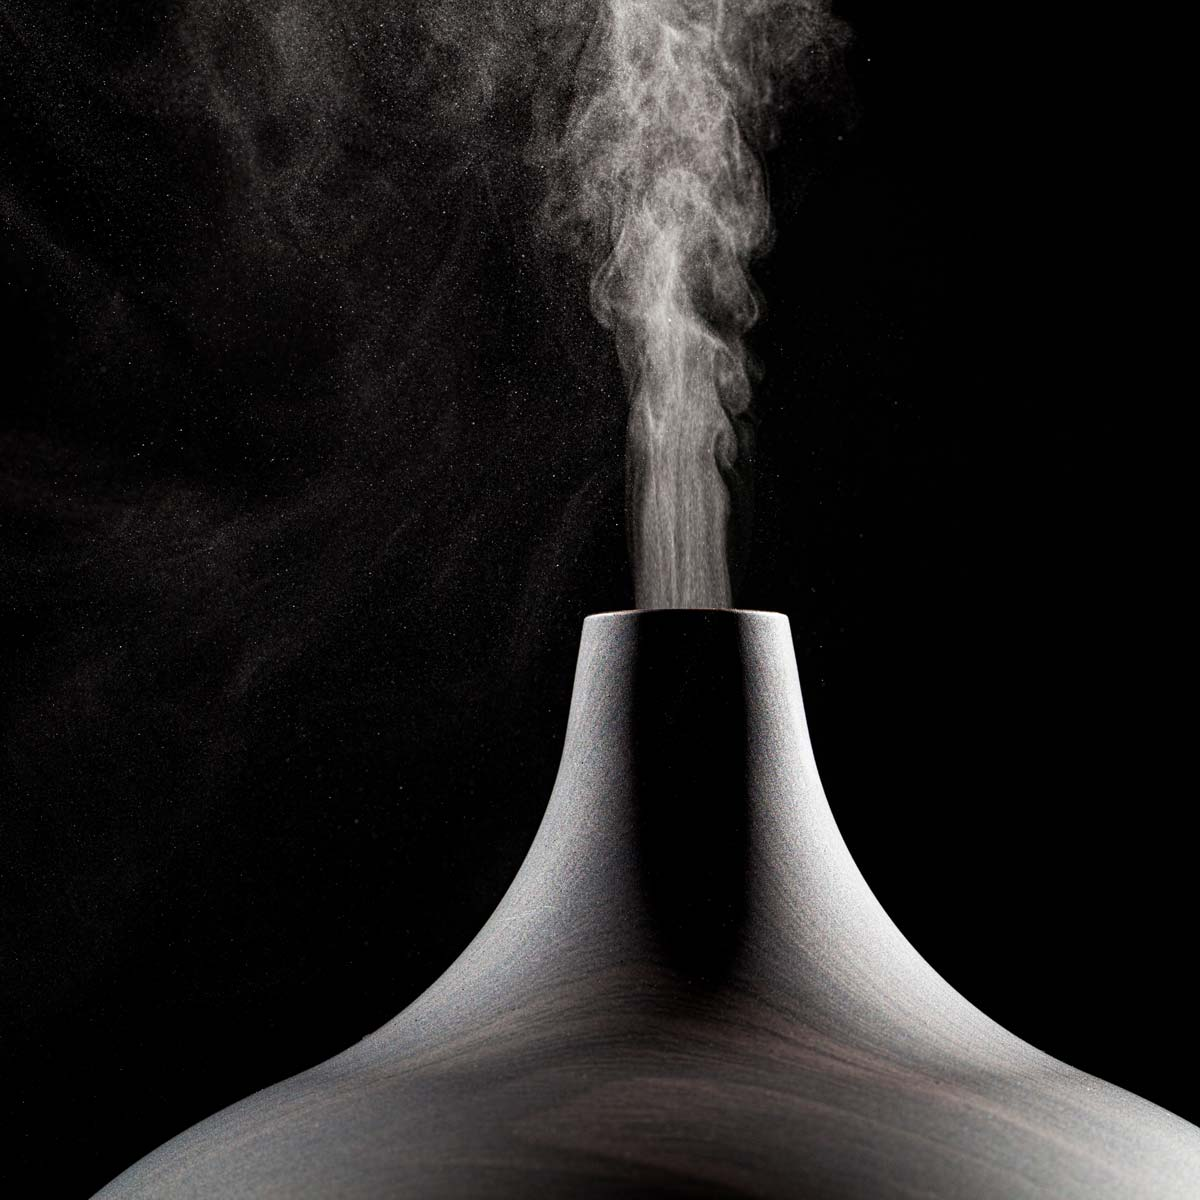 Square close up photo of an essential oil diffuser.